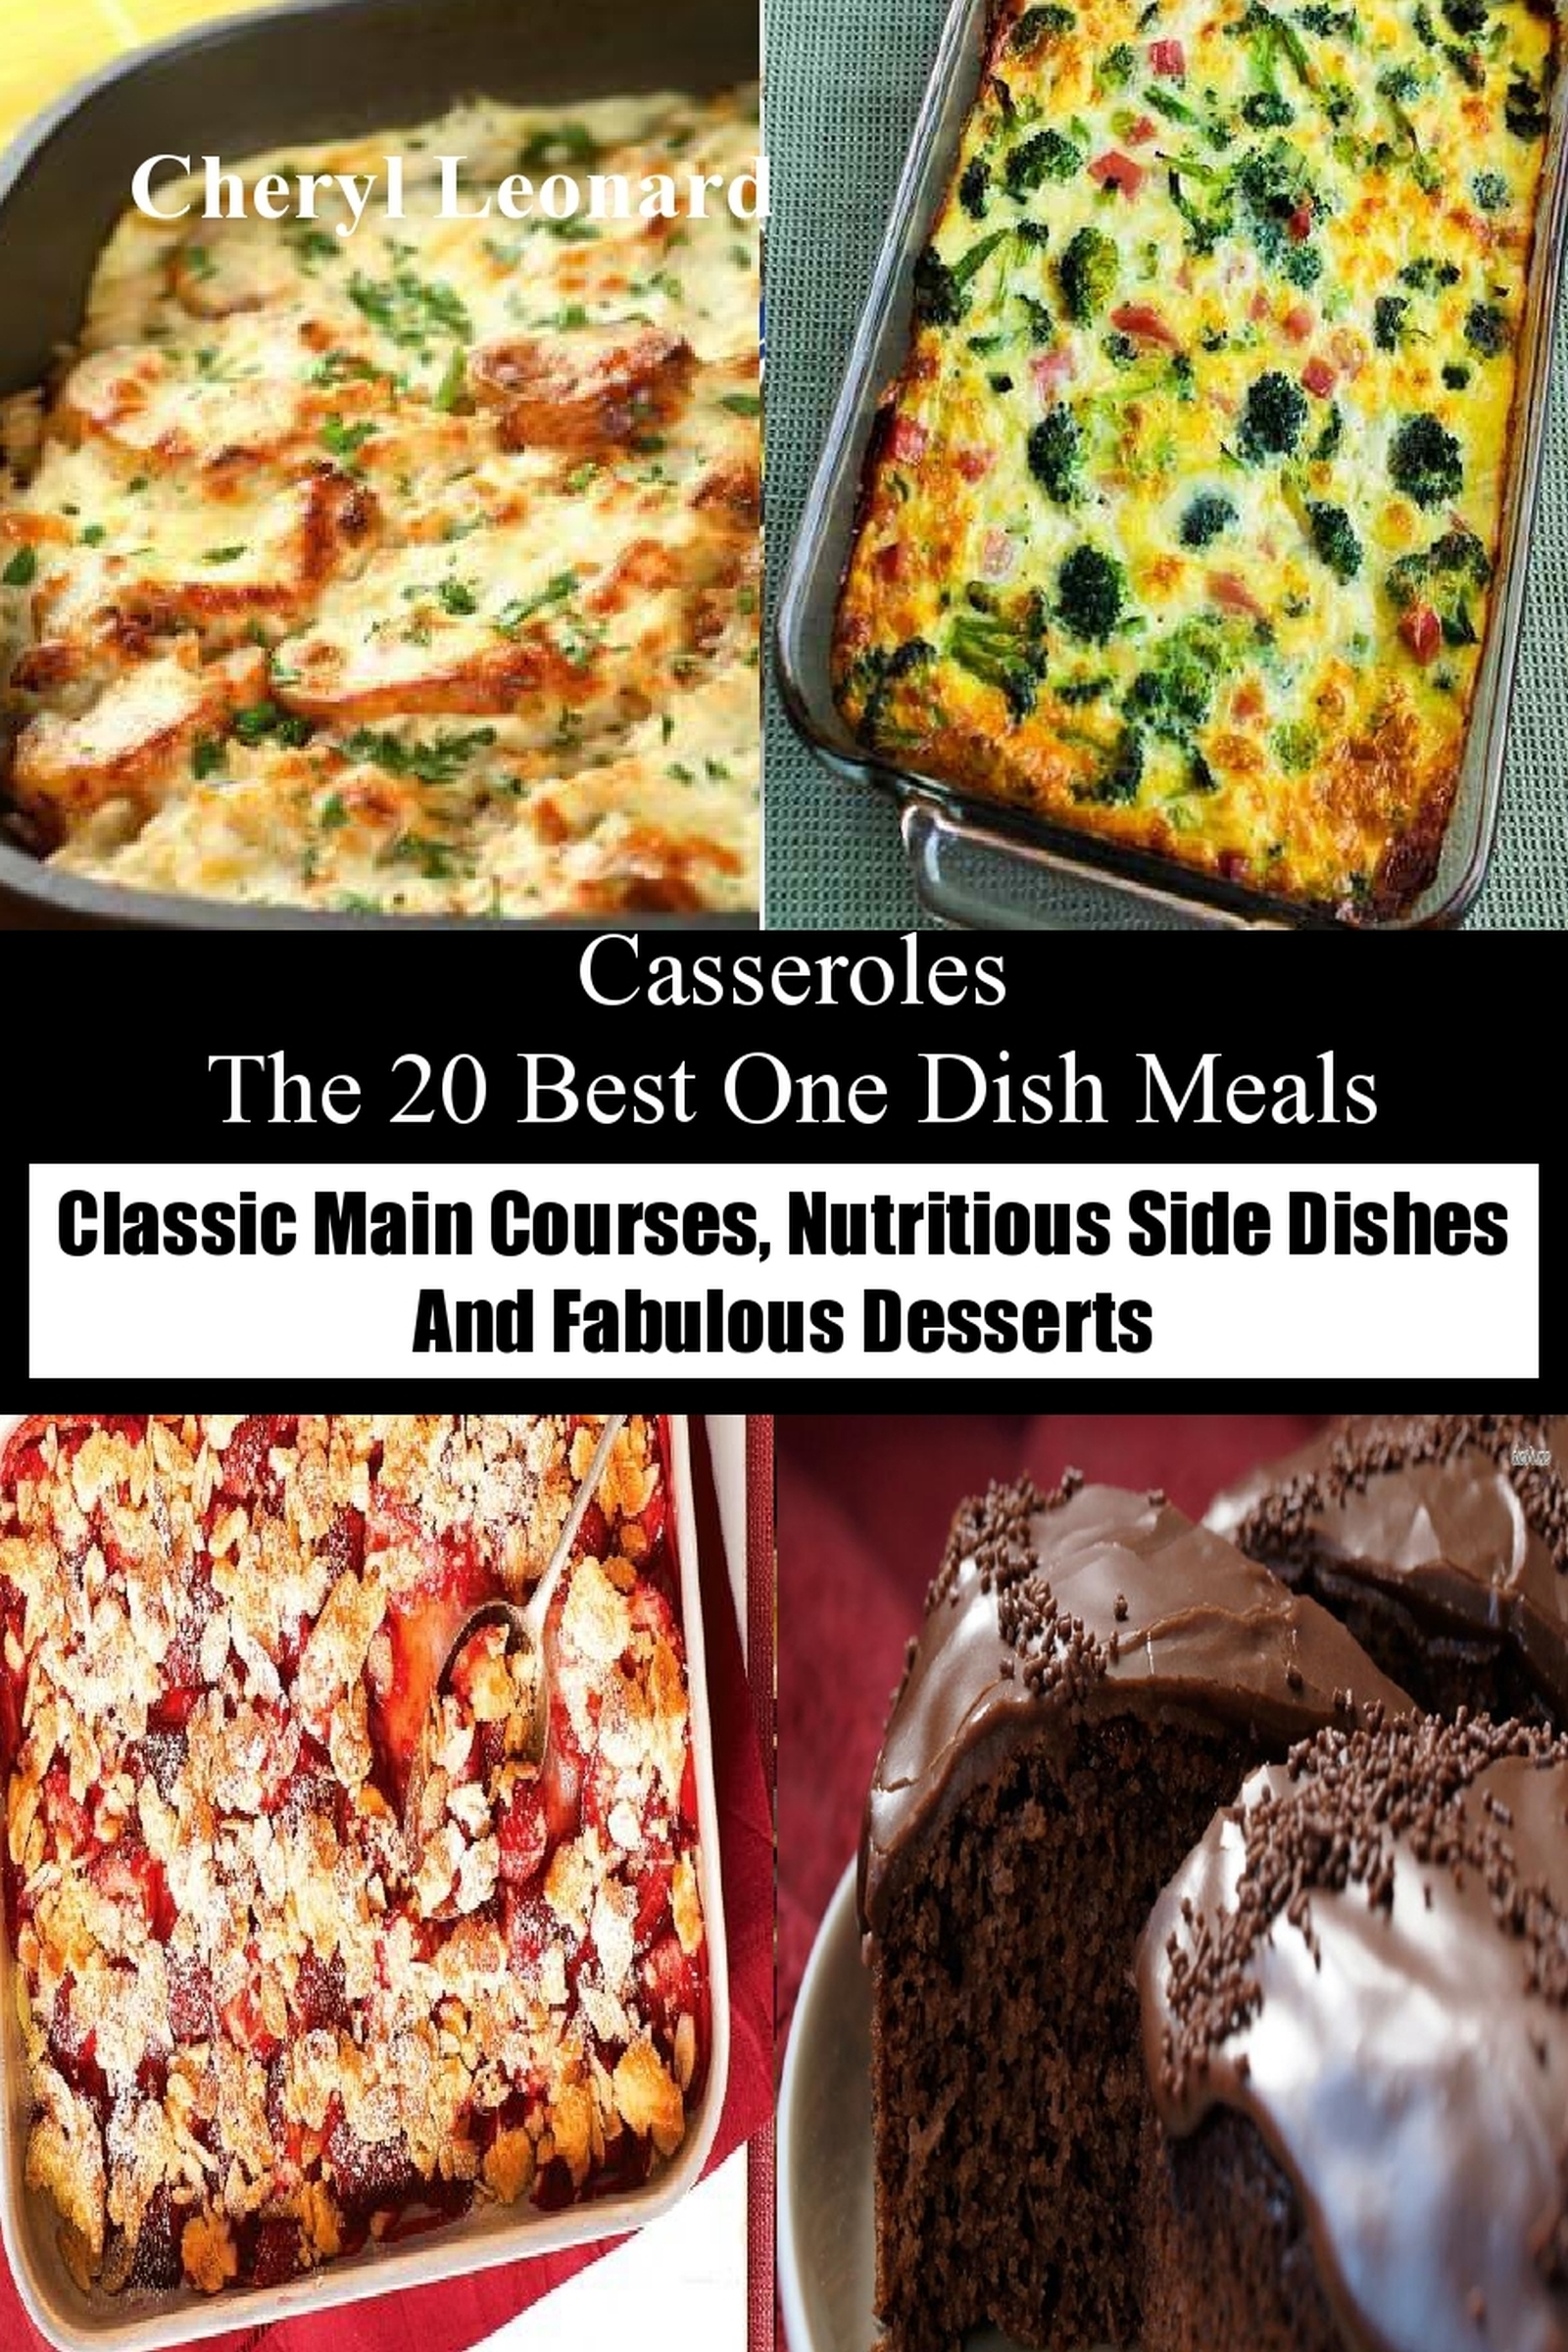 Casseroles The 20 Best One Dish Meals Classic Main Courses, Nutritious Side Dishes And Fabulous Desserts  by  Cheryl Leonard